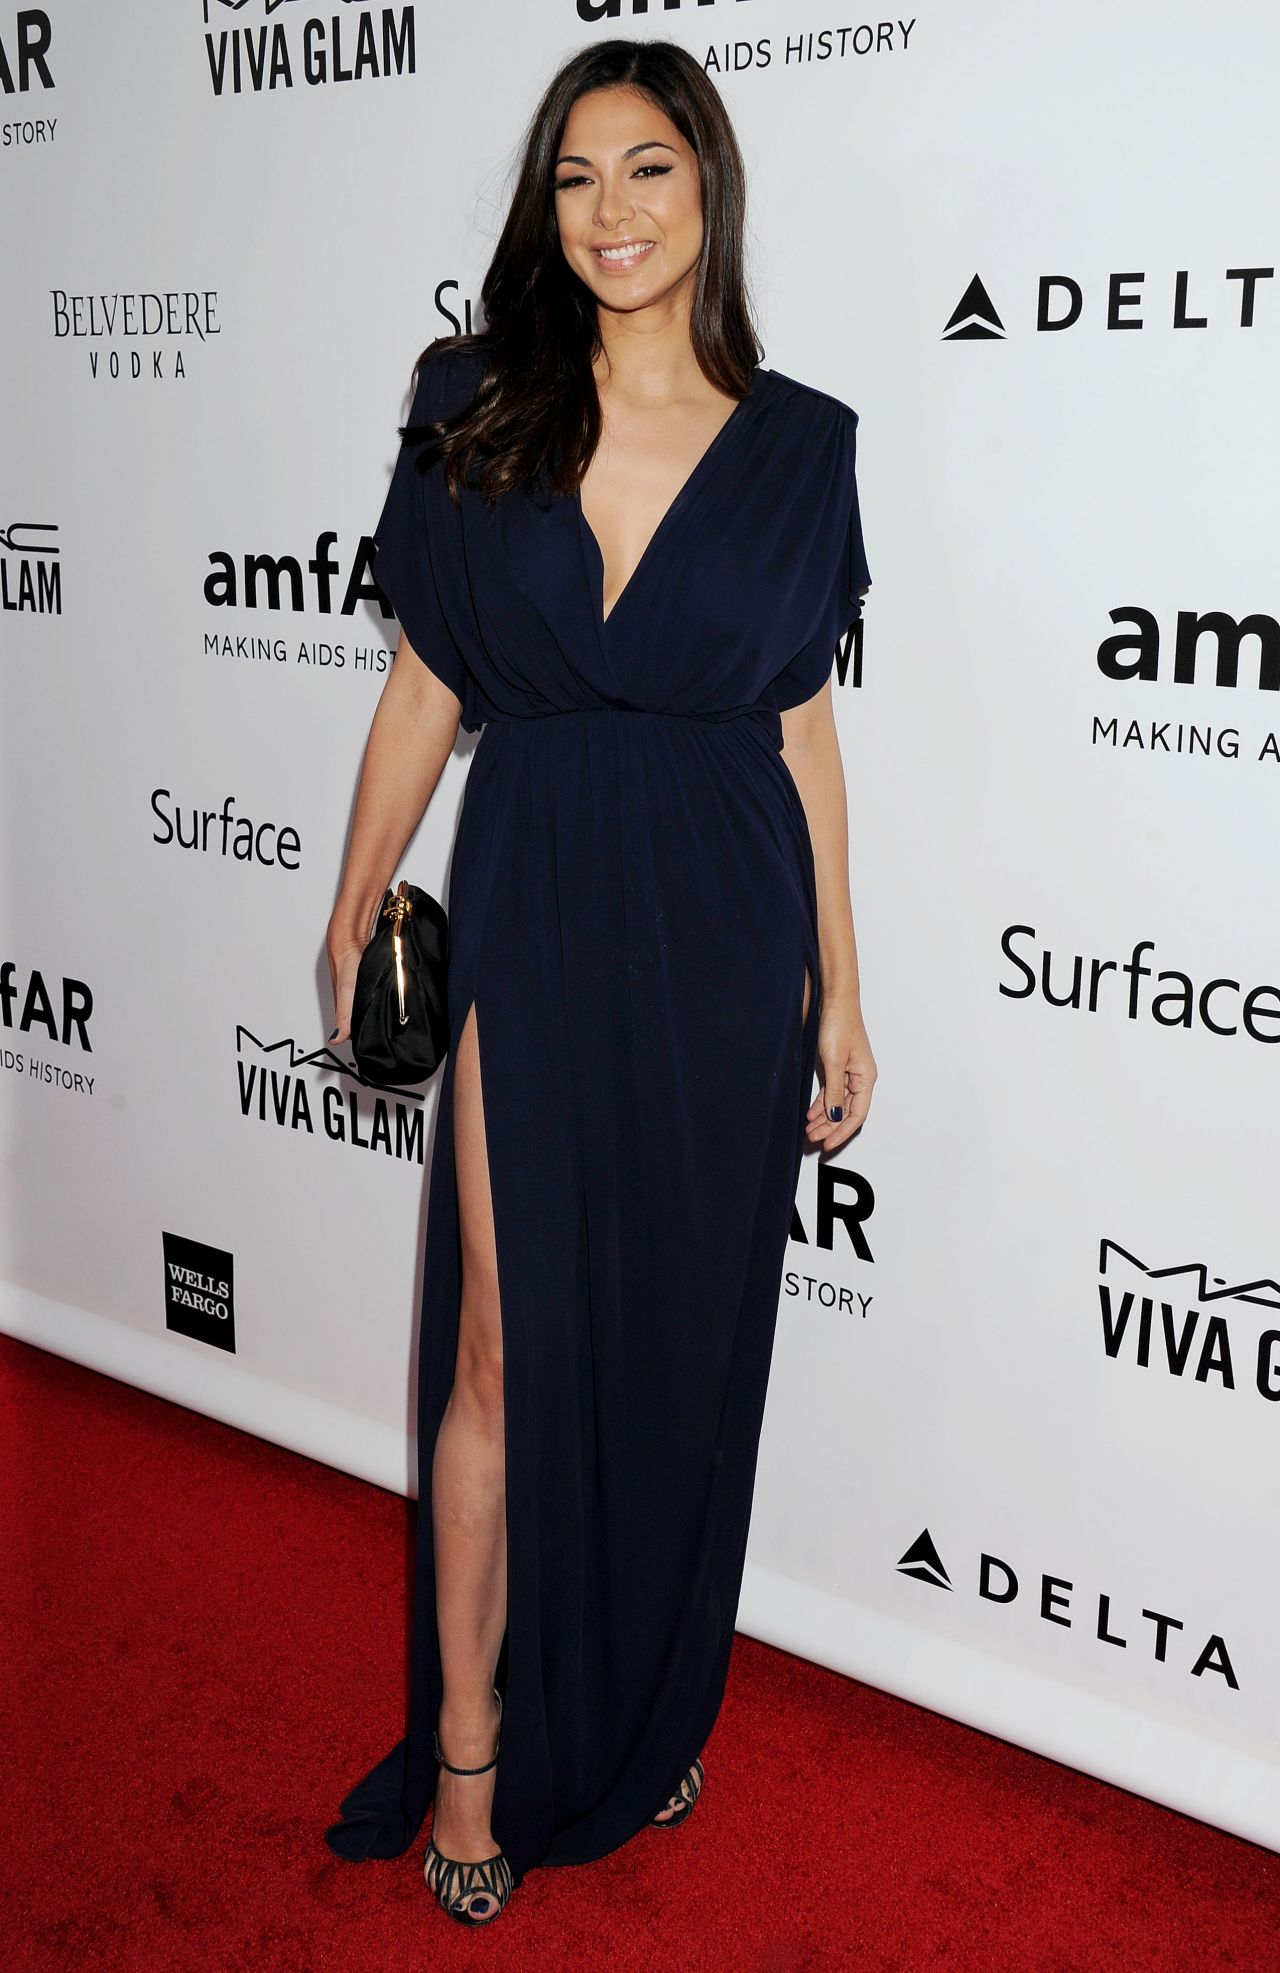 Moran Atias Red Carpet Photos - 2013 amFAR Inspiration Gala Los Angeles in LA